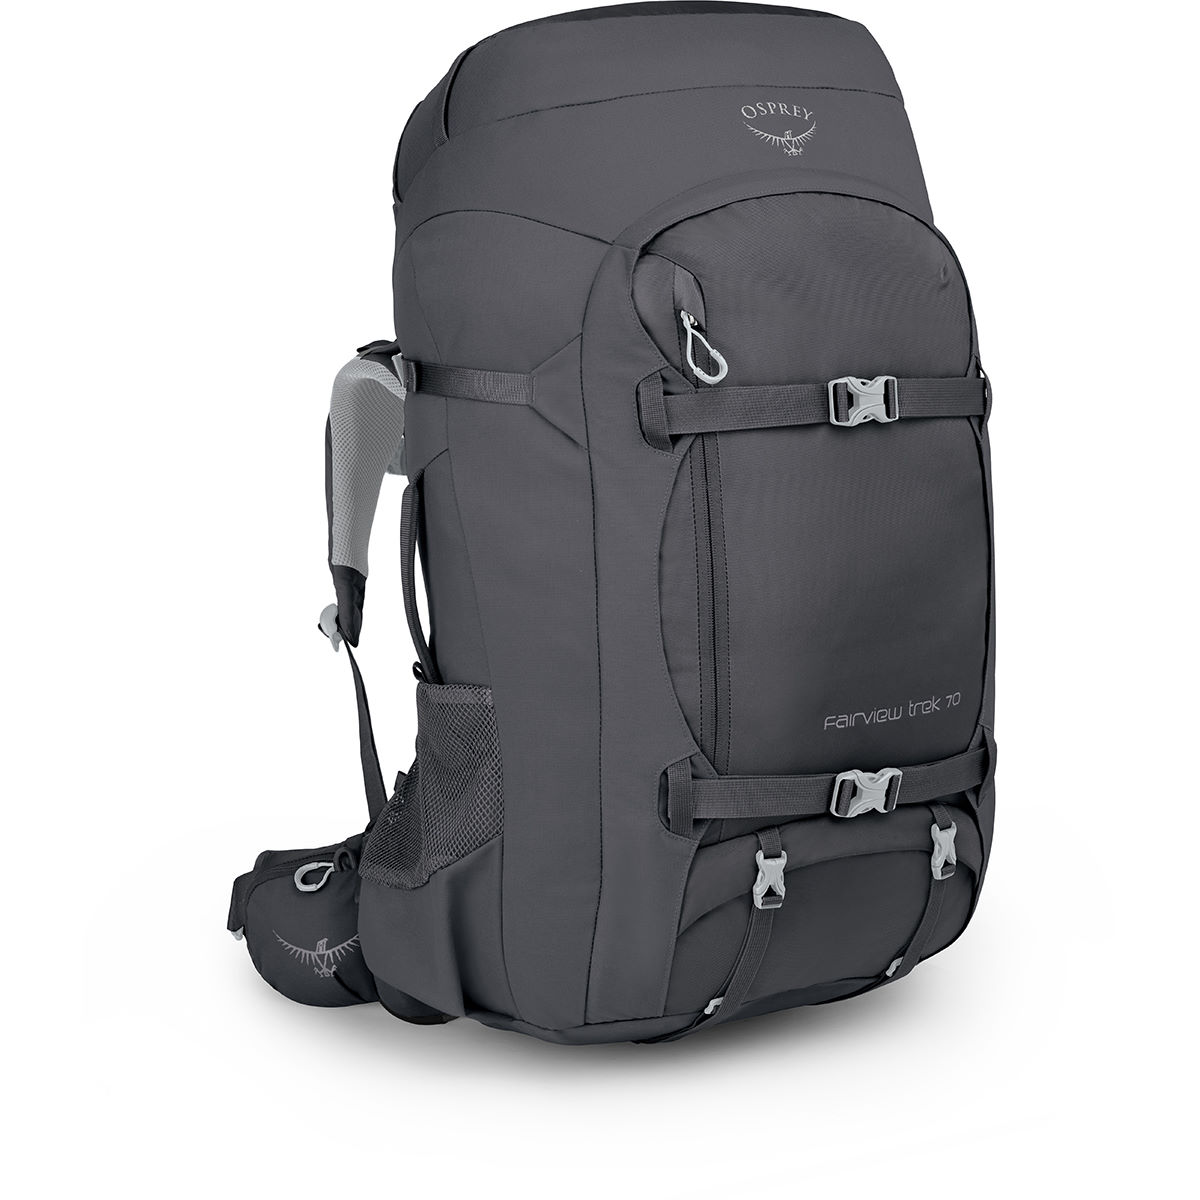 Osprey Osprey Fairview Trek 70 Rucksack   Hiking Bags